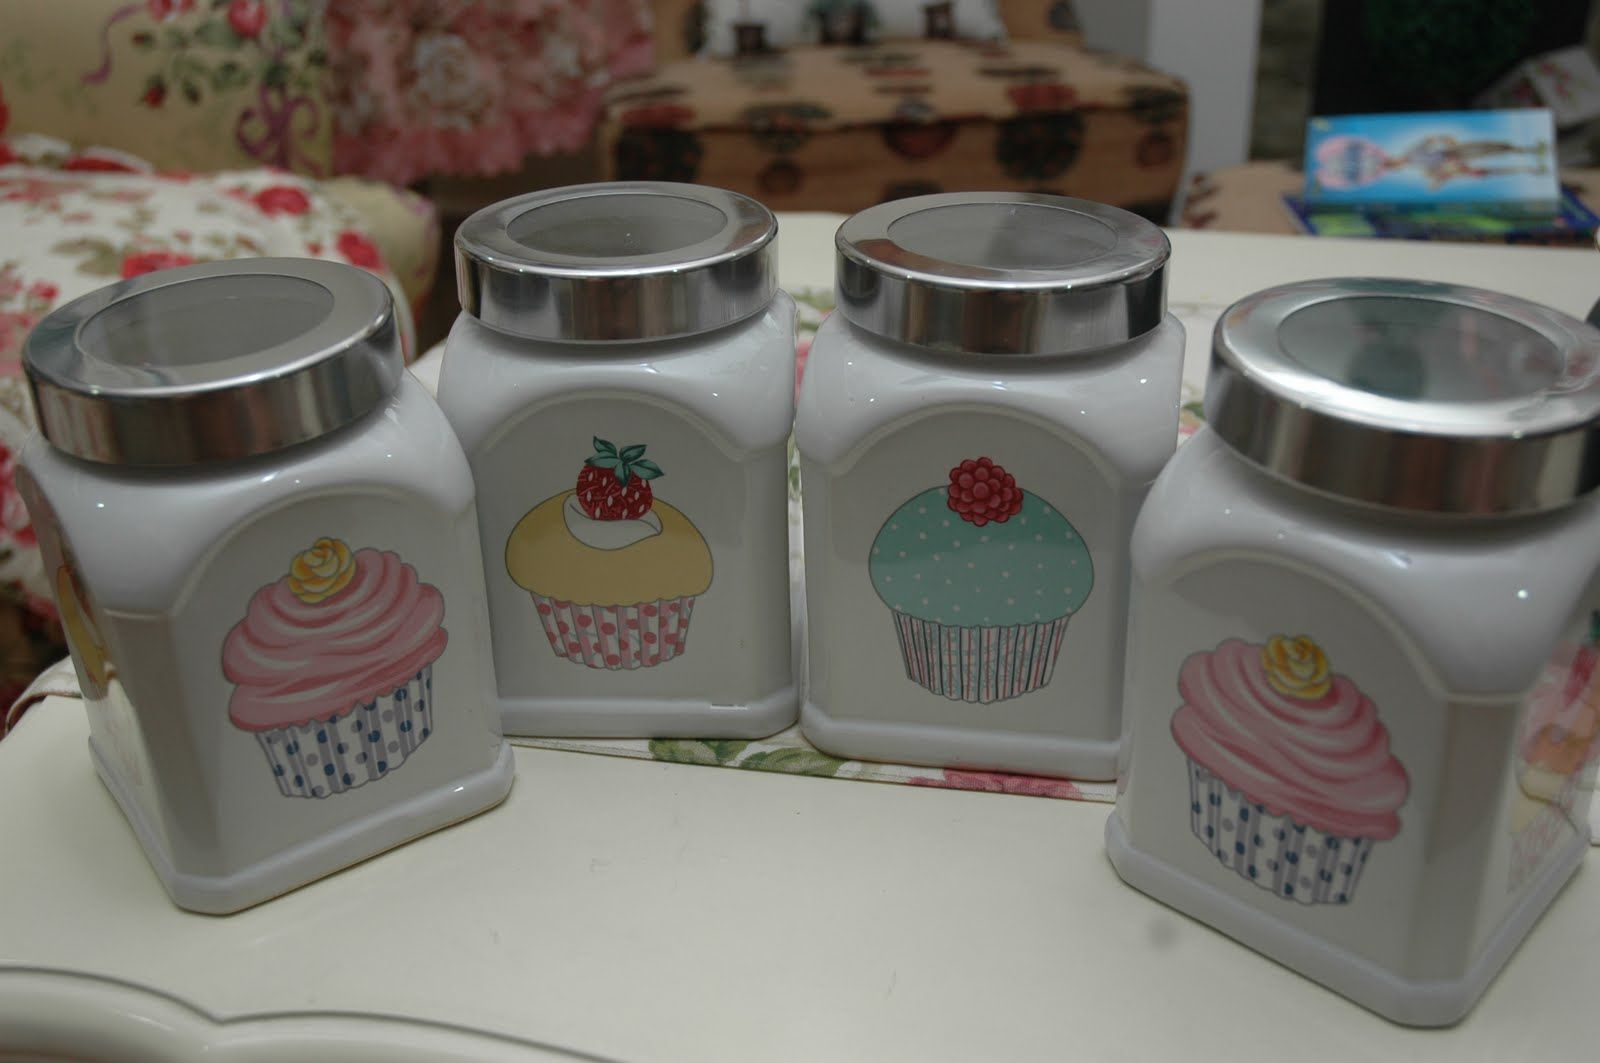 Kitchen Accessories Cupcake Design Interior House Paint Ideas Check More At Http Mindlessapparel Com Kitchen Accessor Decorar Cozinha Relogio Cozinha Potes